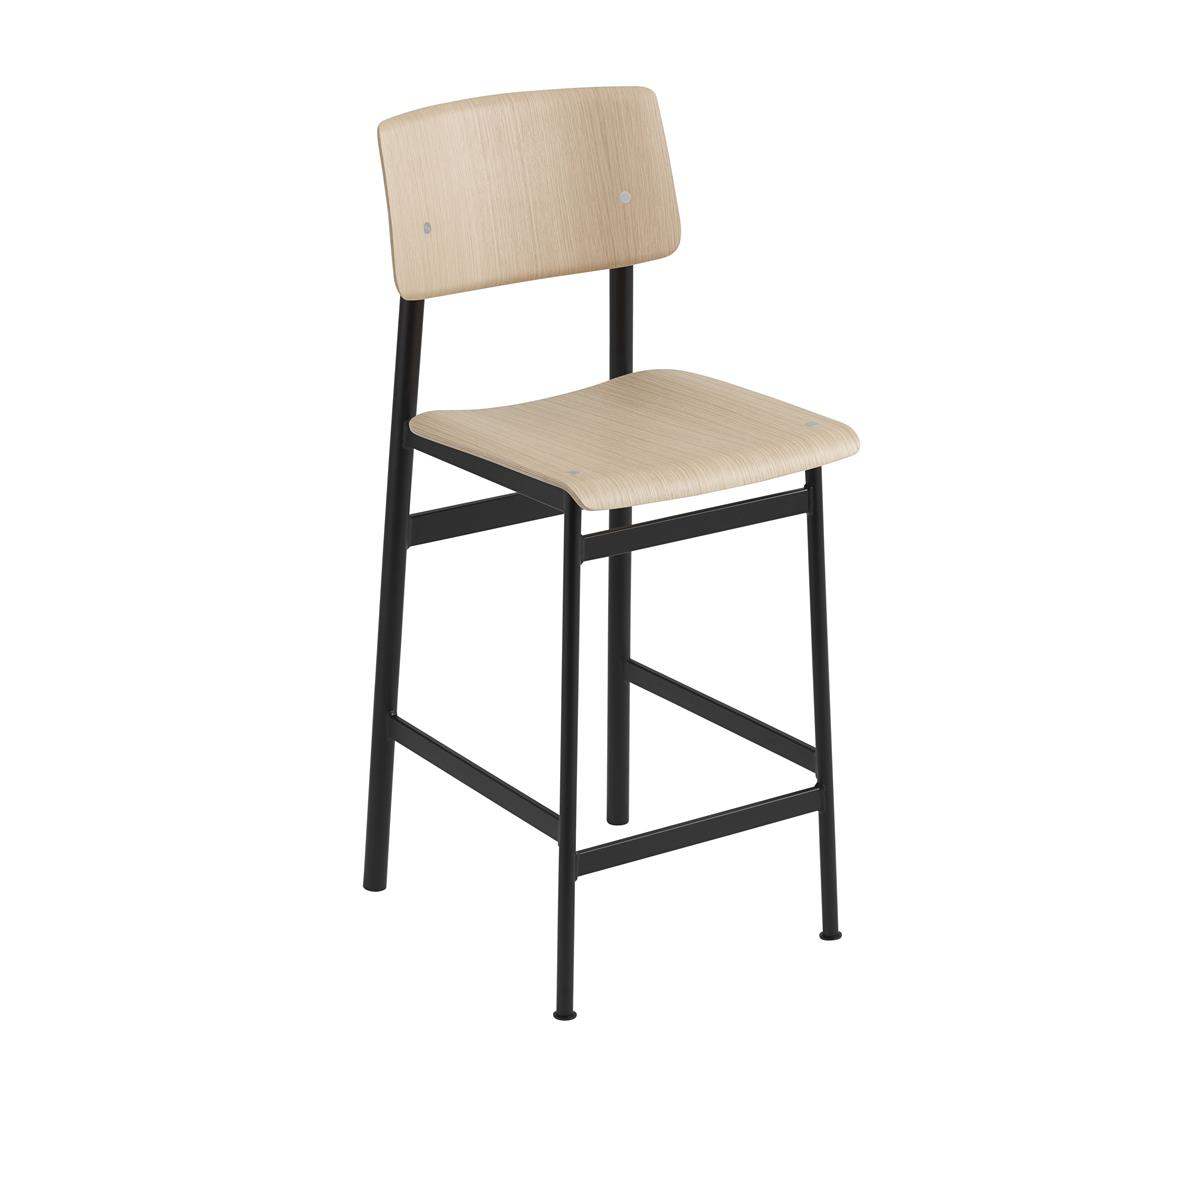 Loft Bar Stool H65 - Black & Oak